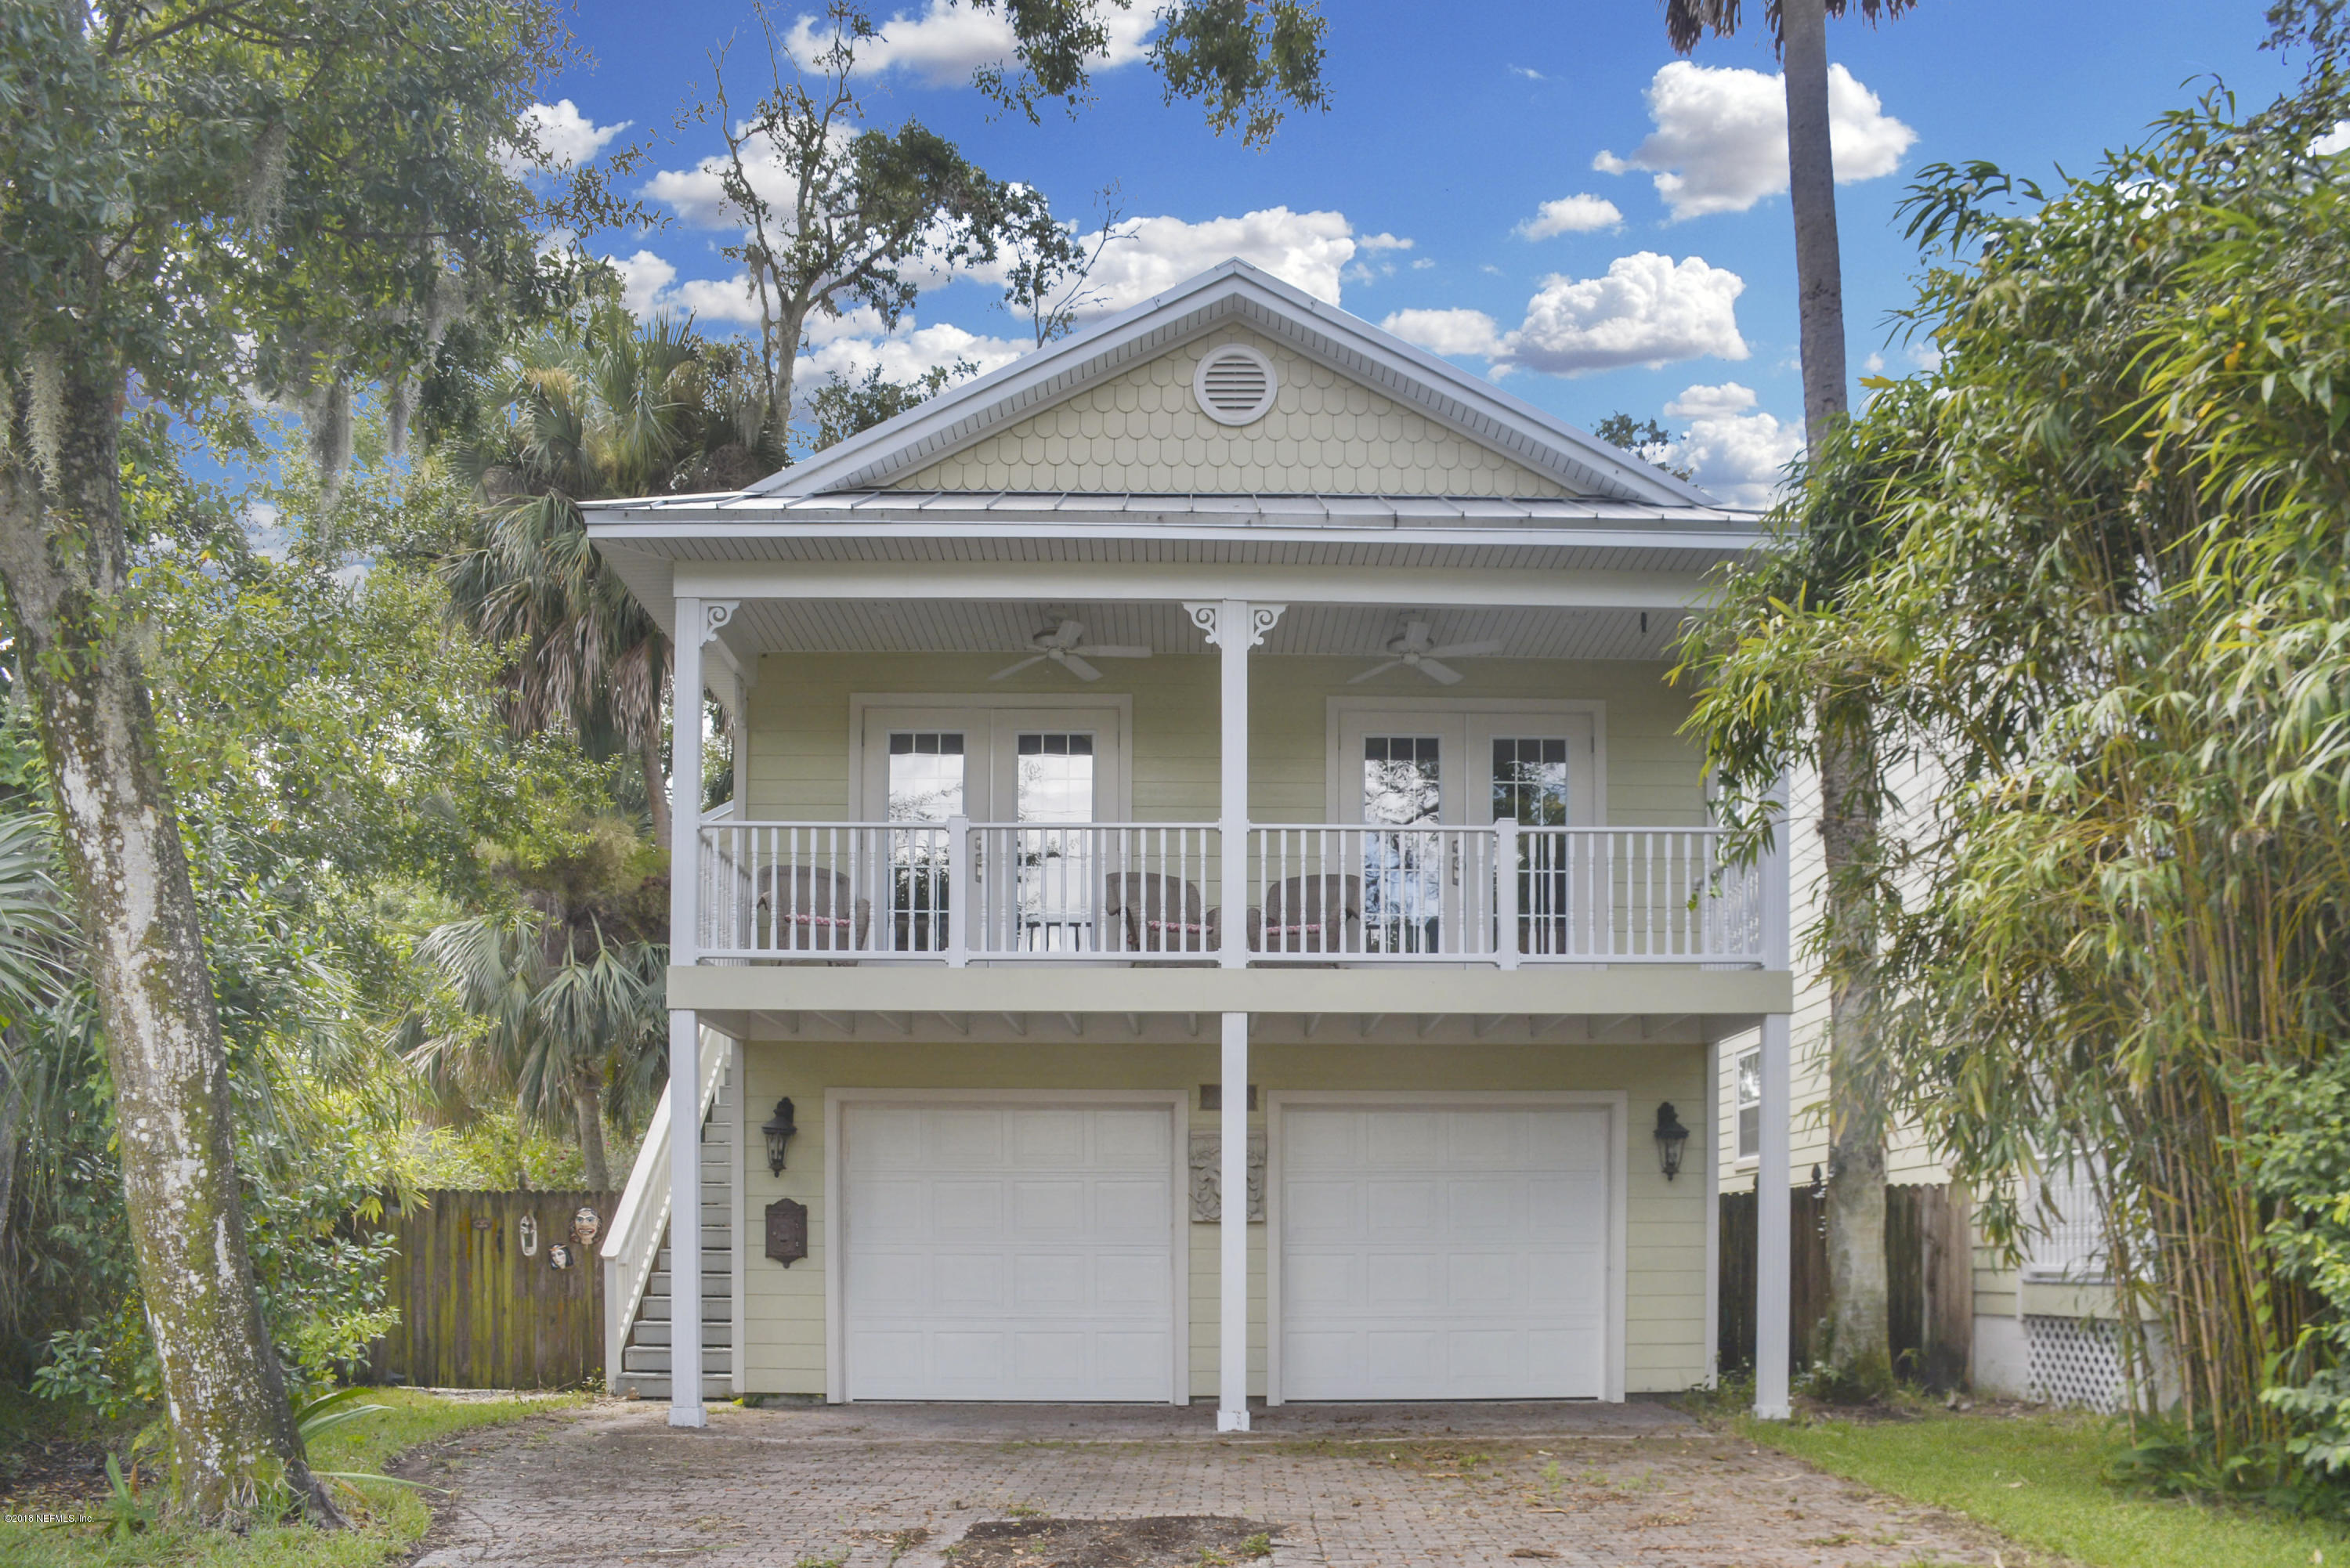 13 SANCHEZ, ST AUGUSTINE, FLORIDA 32084, 3 Bedrooms Bedrooms, ,3 BathroomsBathrooms,Residential - single family,For sale,SANCHEZ,953425